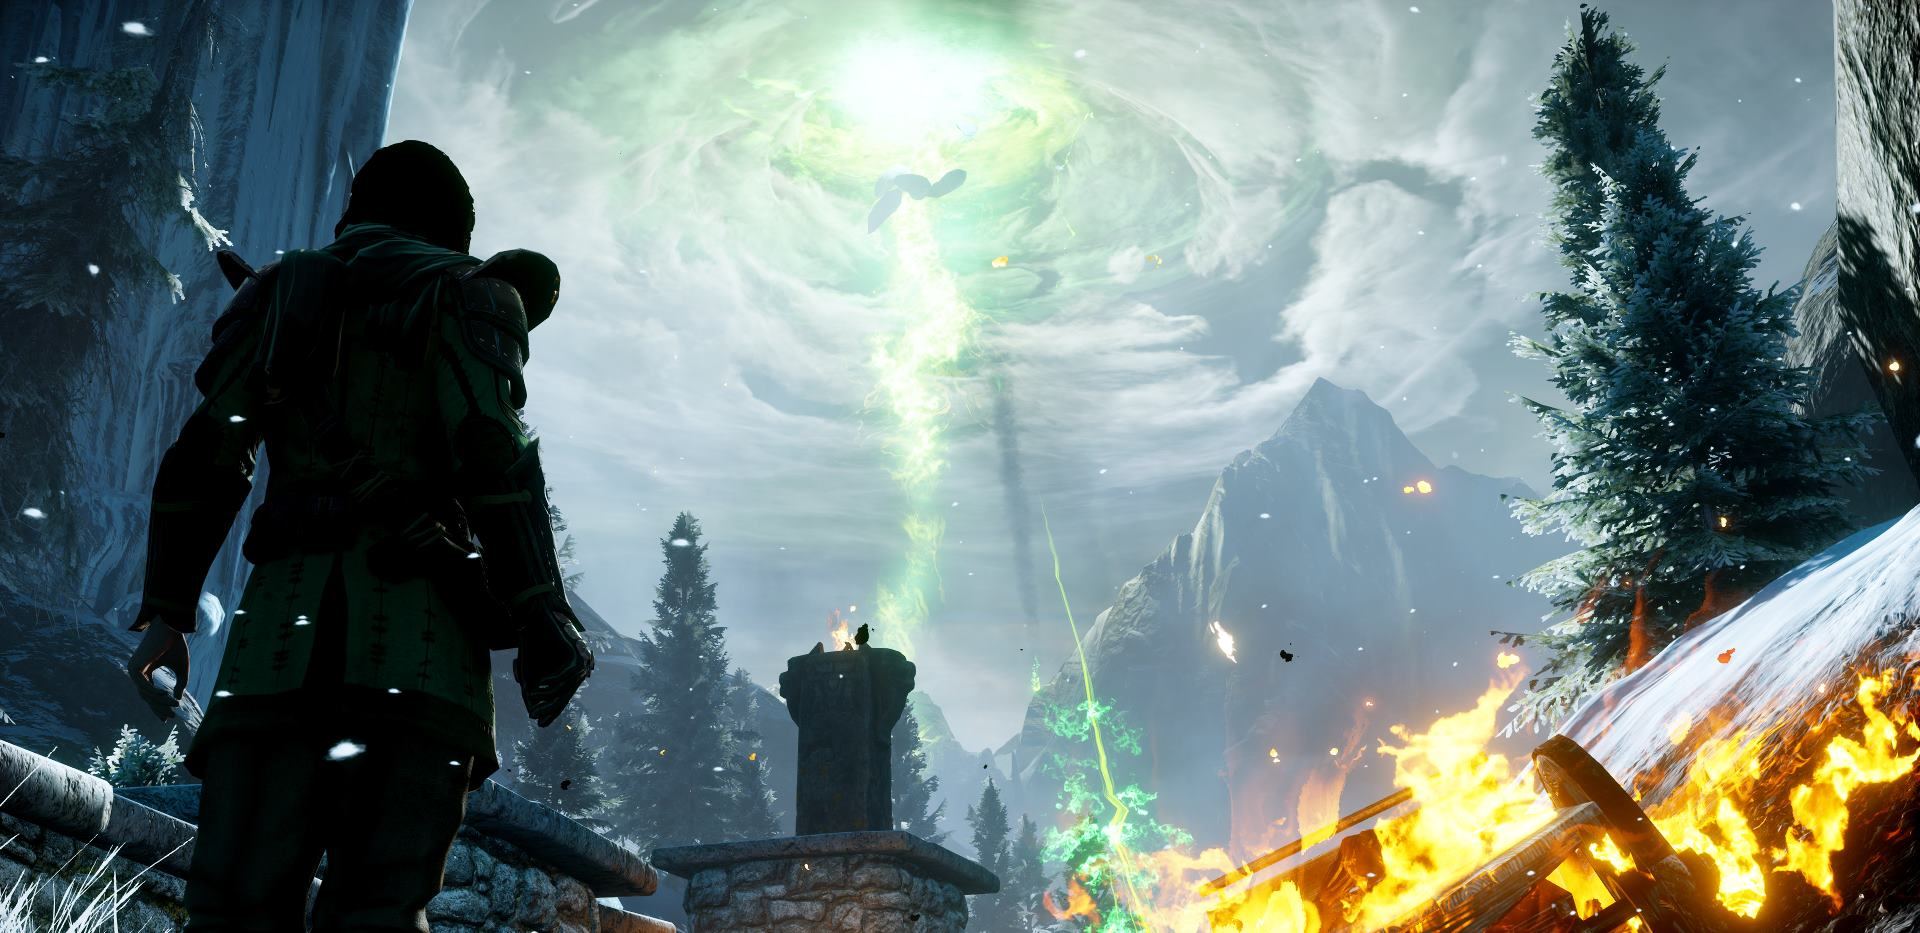 Dragon Age: Inquisition wins another game-of-the-year award